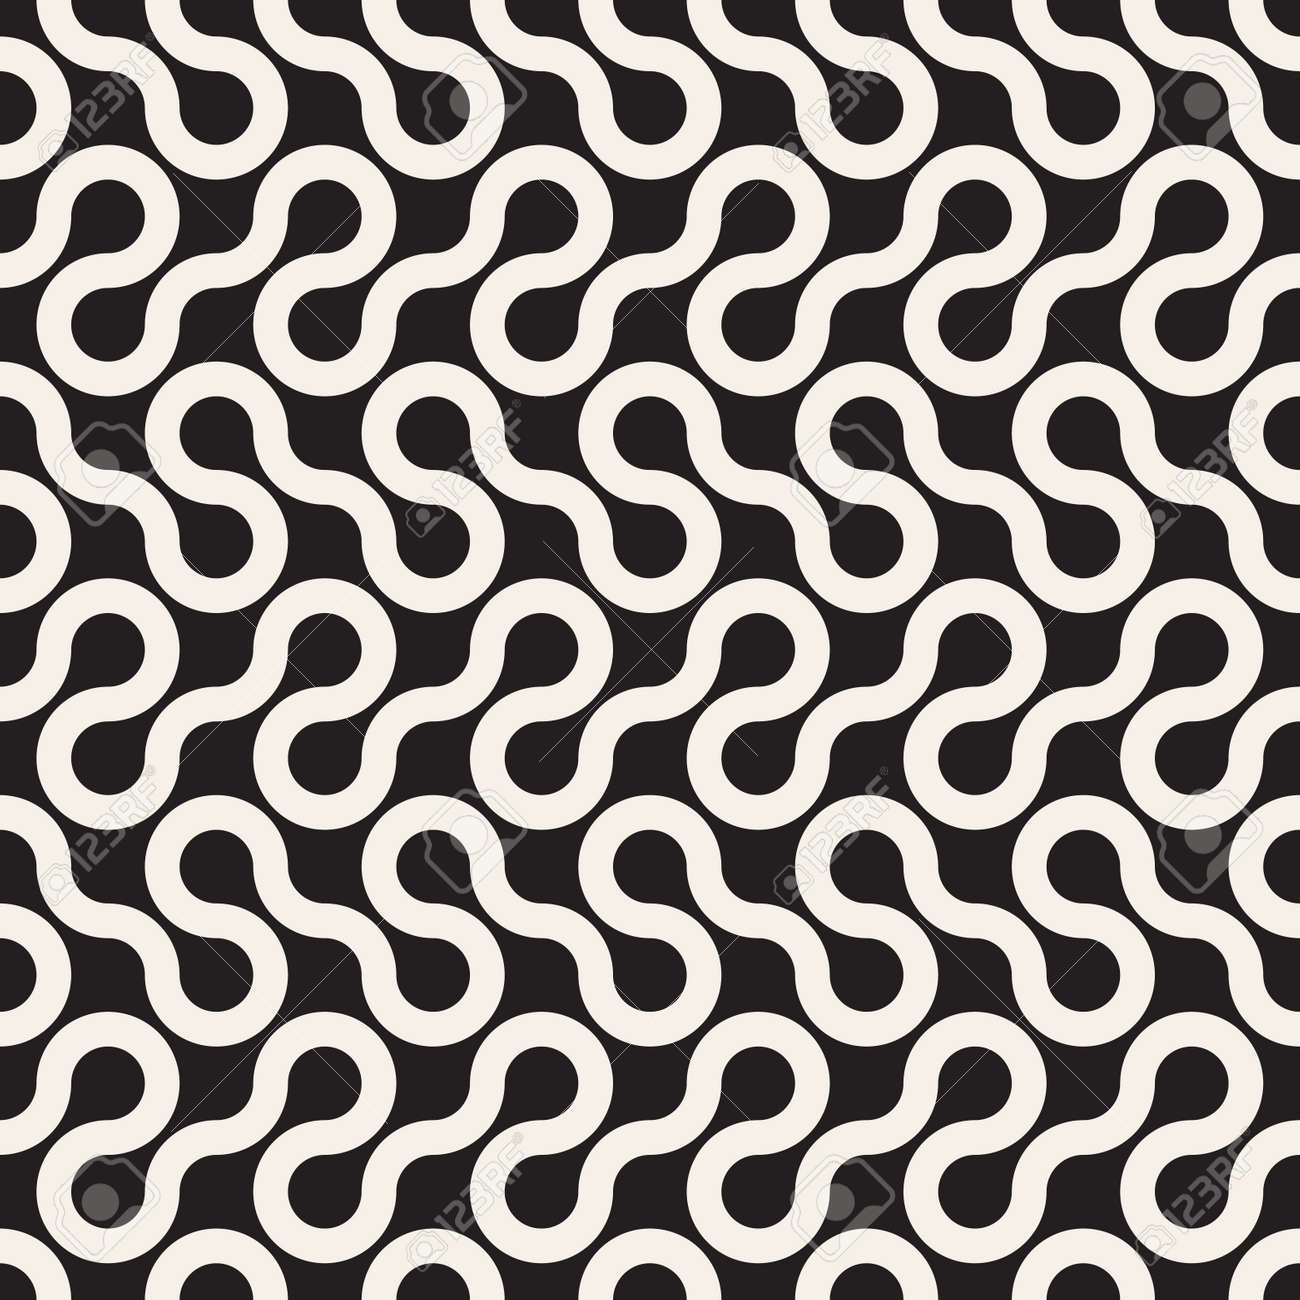 Vector seamless pattern. Modern stylish abstract texture. Repeating geometric tiles - 170973908